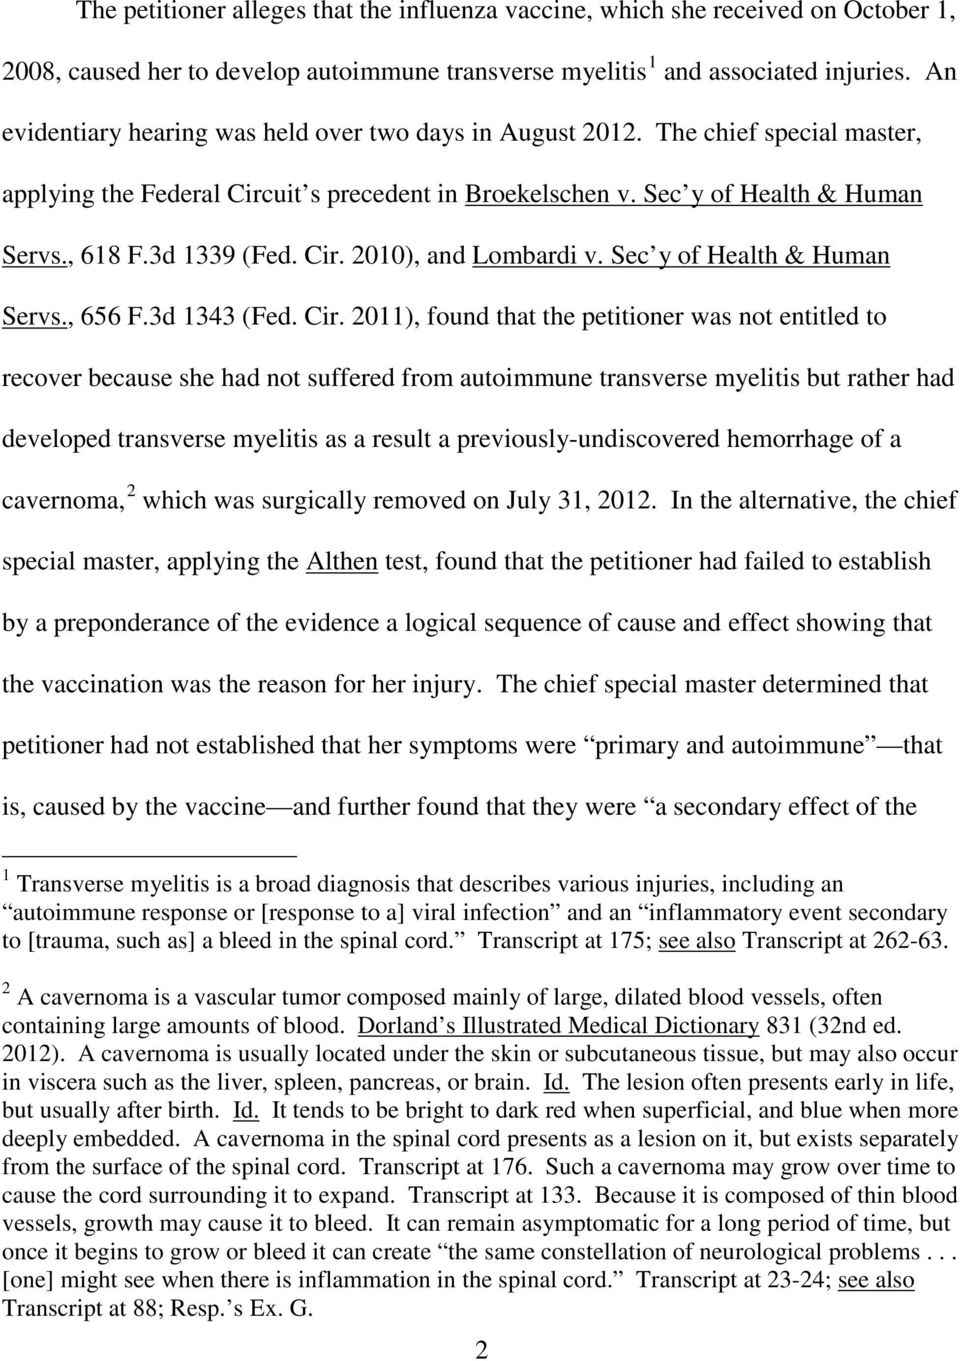 Cir. 2010, and Lombardi v. Sec y of Health & Human Servs., 656 F.3d 1343 (Fed. Cir.